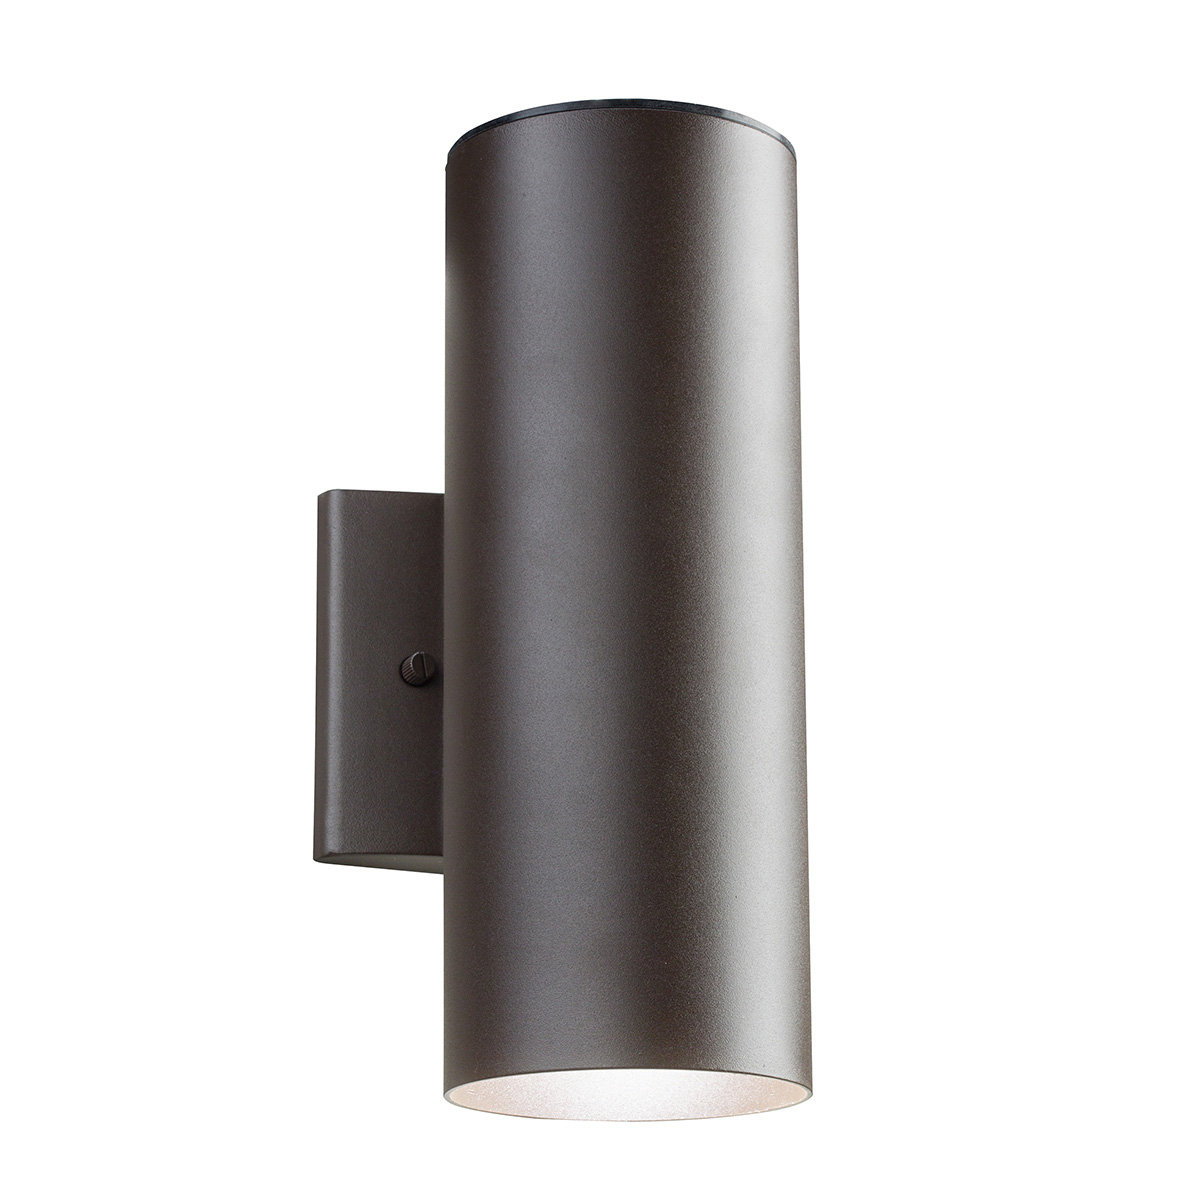 Outdoor led updown wall sconce by kichler 11251azt30 11251 outdoor led updown wall sconce by kichler 11251azt30 audiocablefo